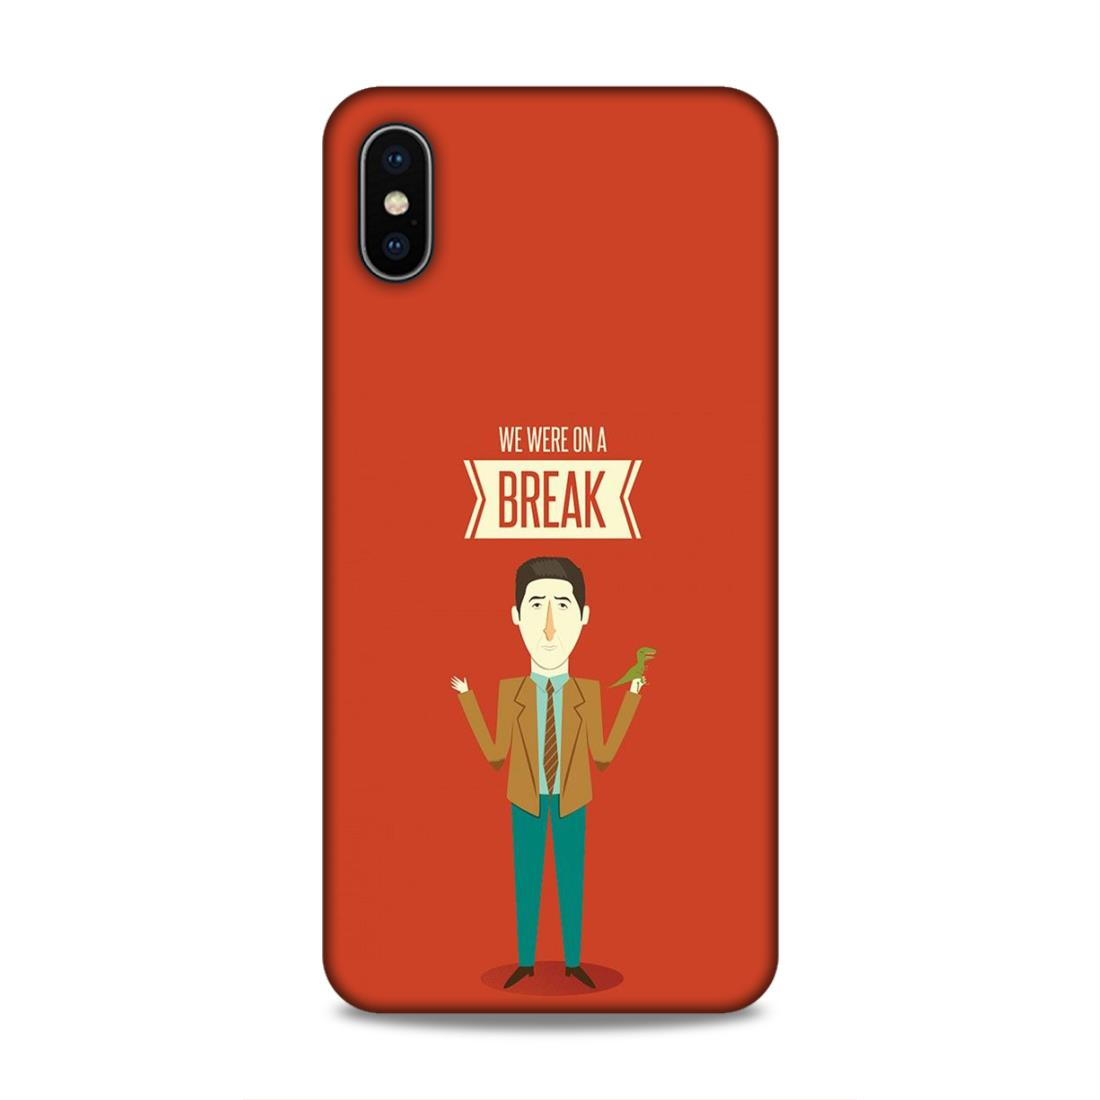 Phone Cases,Apple Phone Cases,iPhone Xs Max,Friends